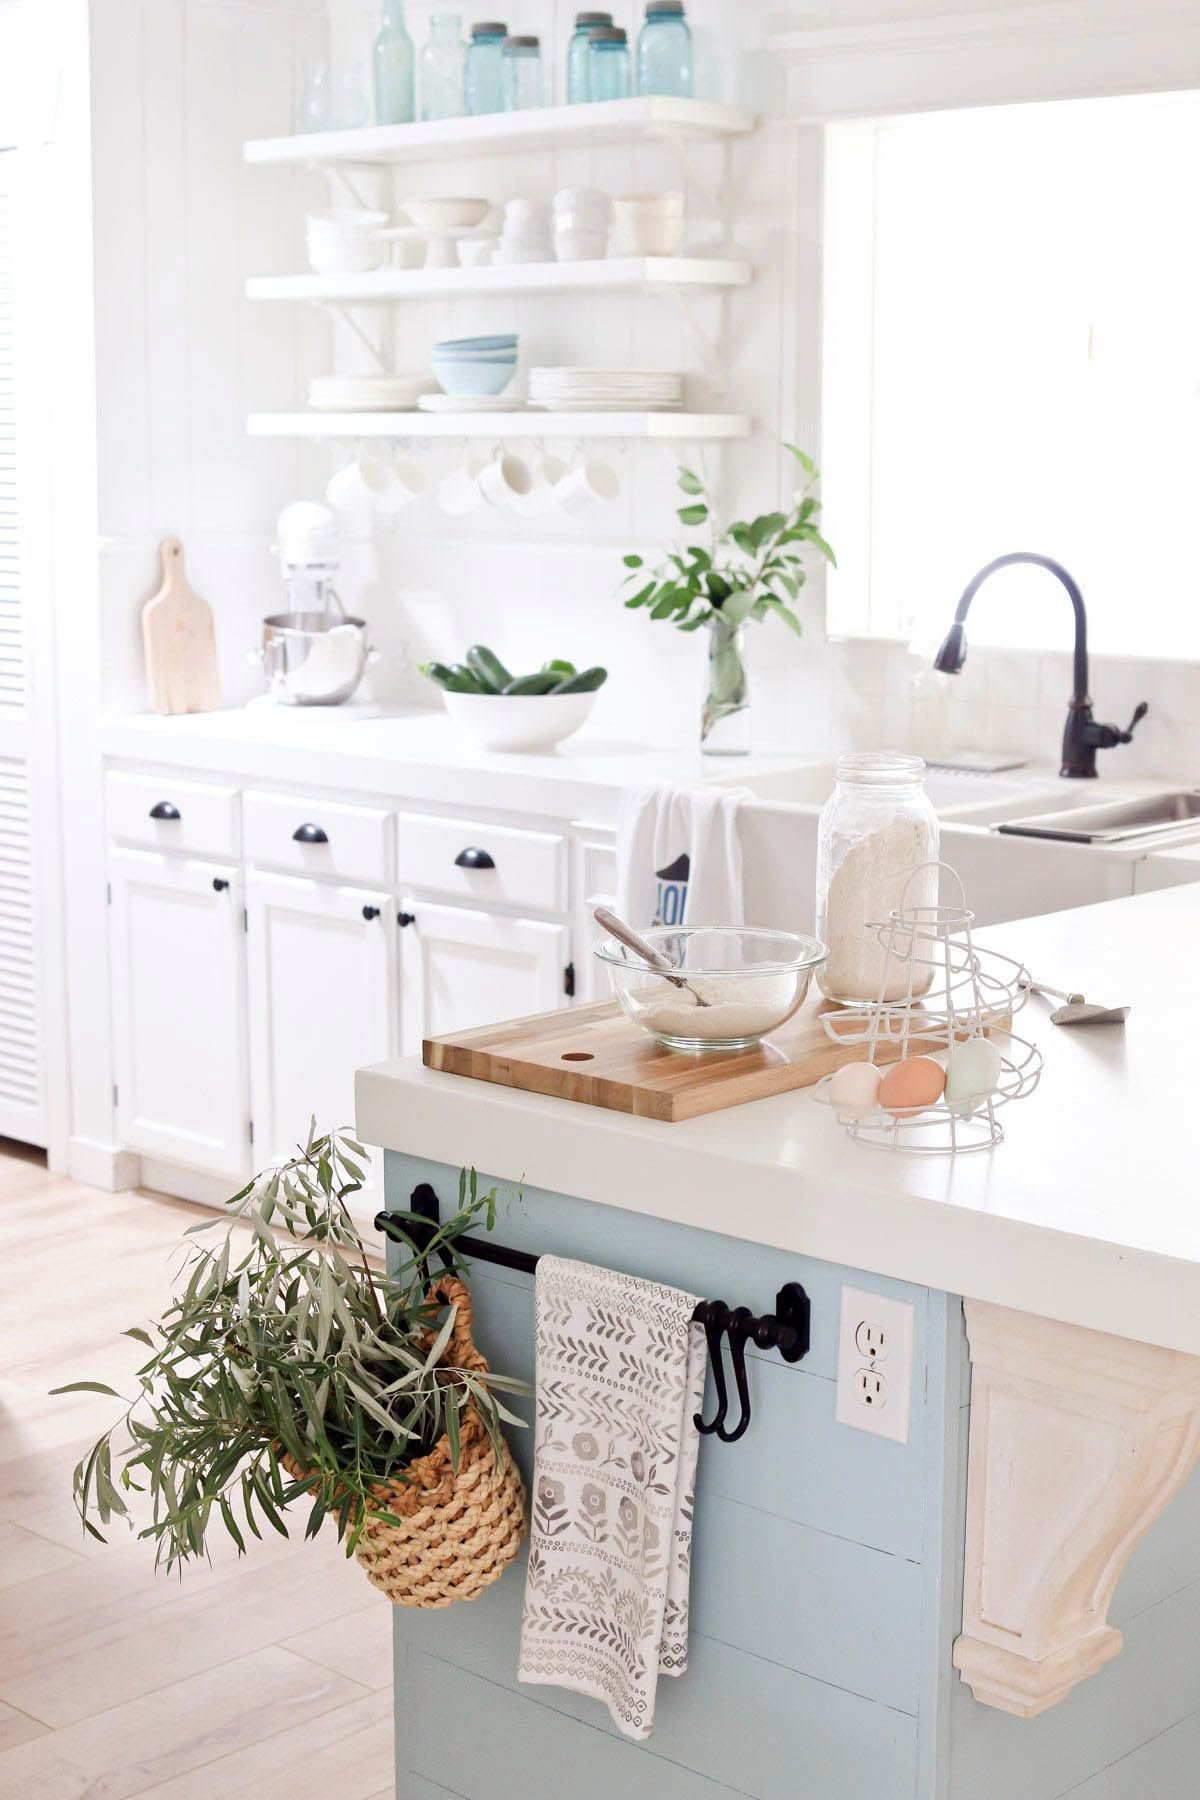 Wonderful modern open shelving kitchen ideas for your home ...